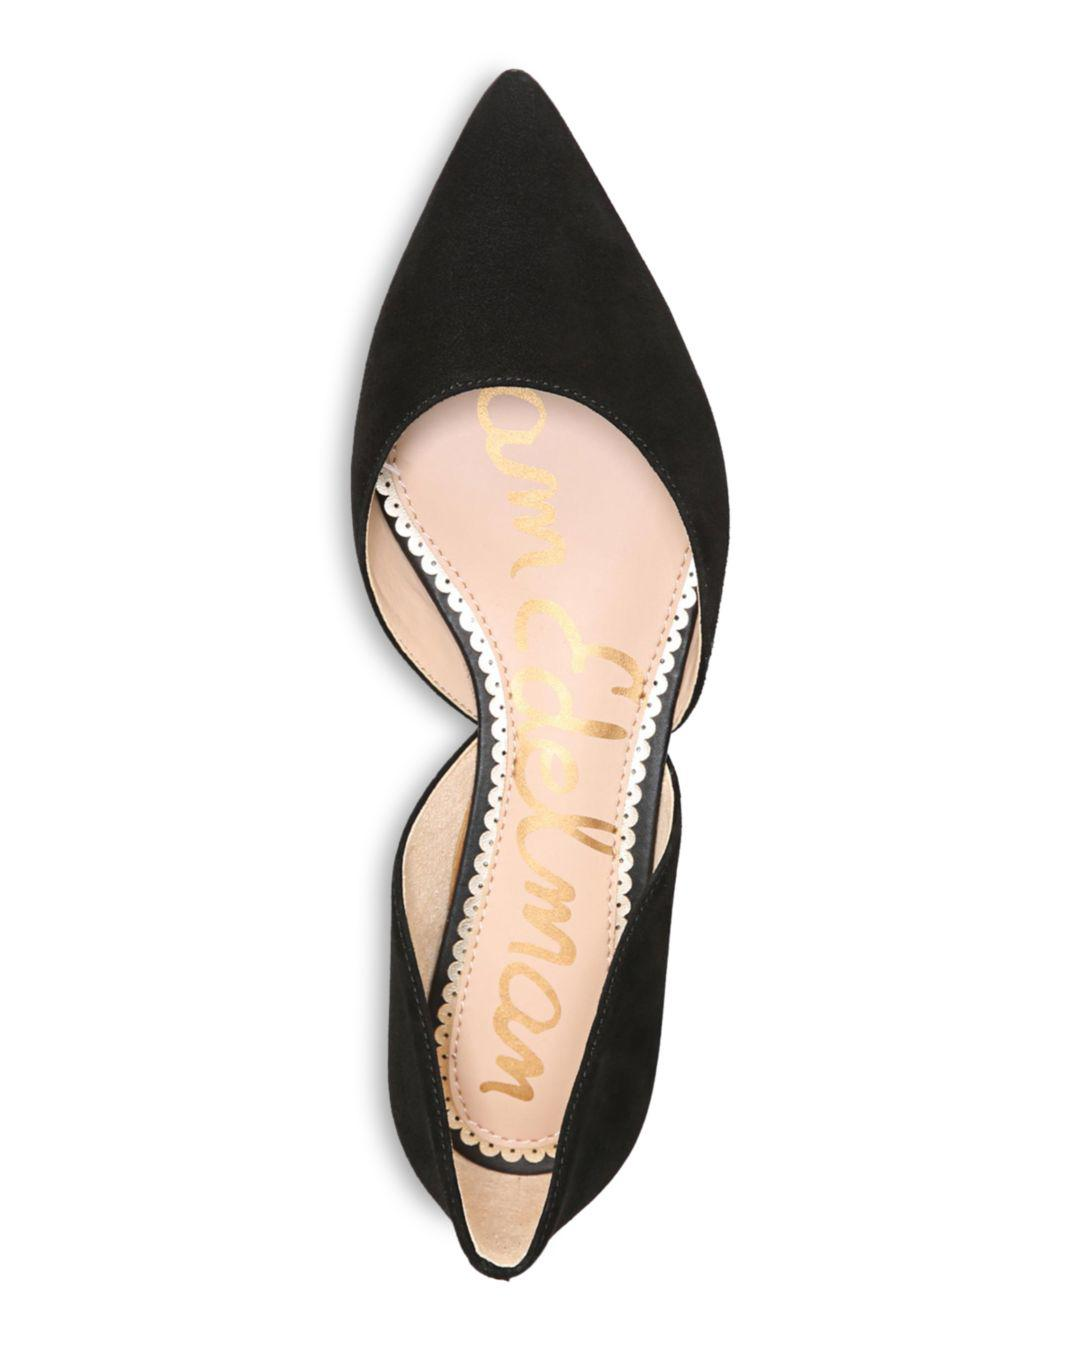 e9b7b44d0852 Sam Edelman - Black Women s Rodney Floral-embroidered D orsay Flats - Lyst.  View fullscreen